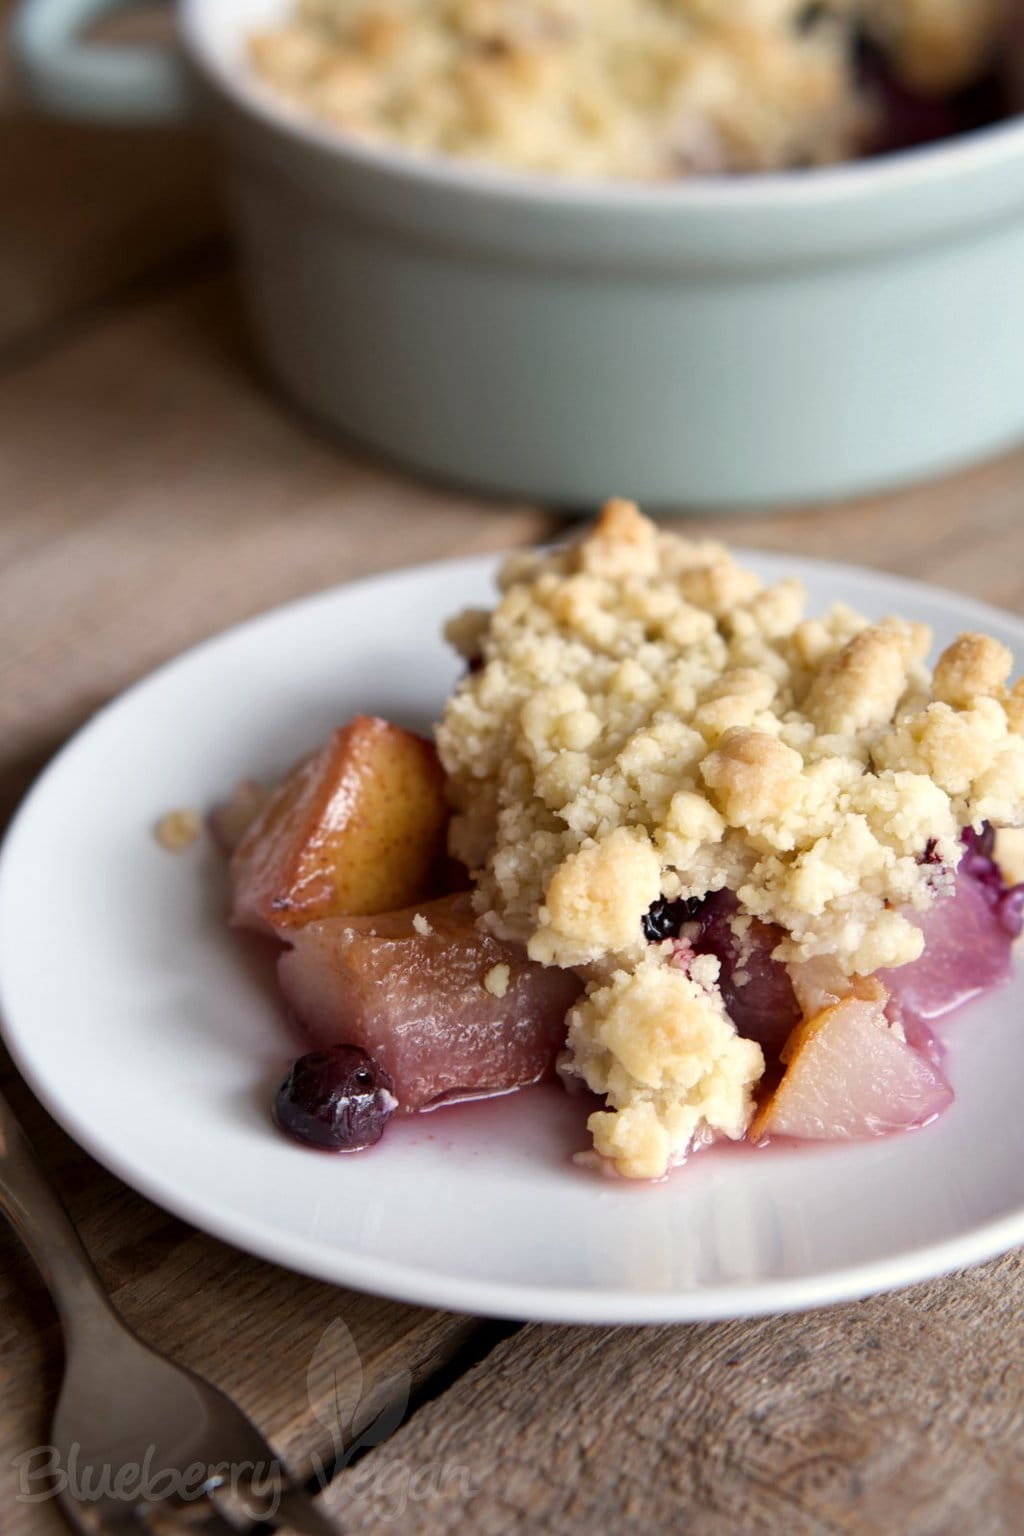 Delicious Pear Blueberry Crumble